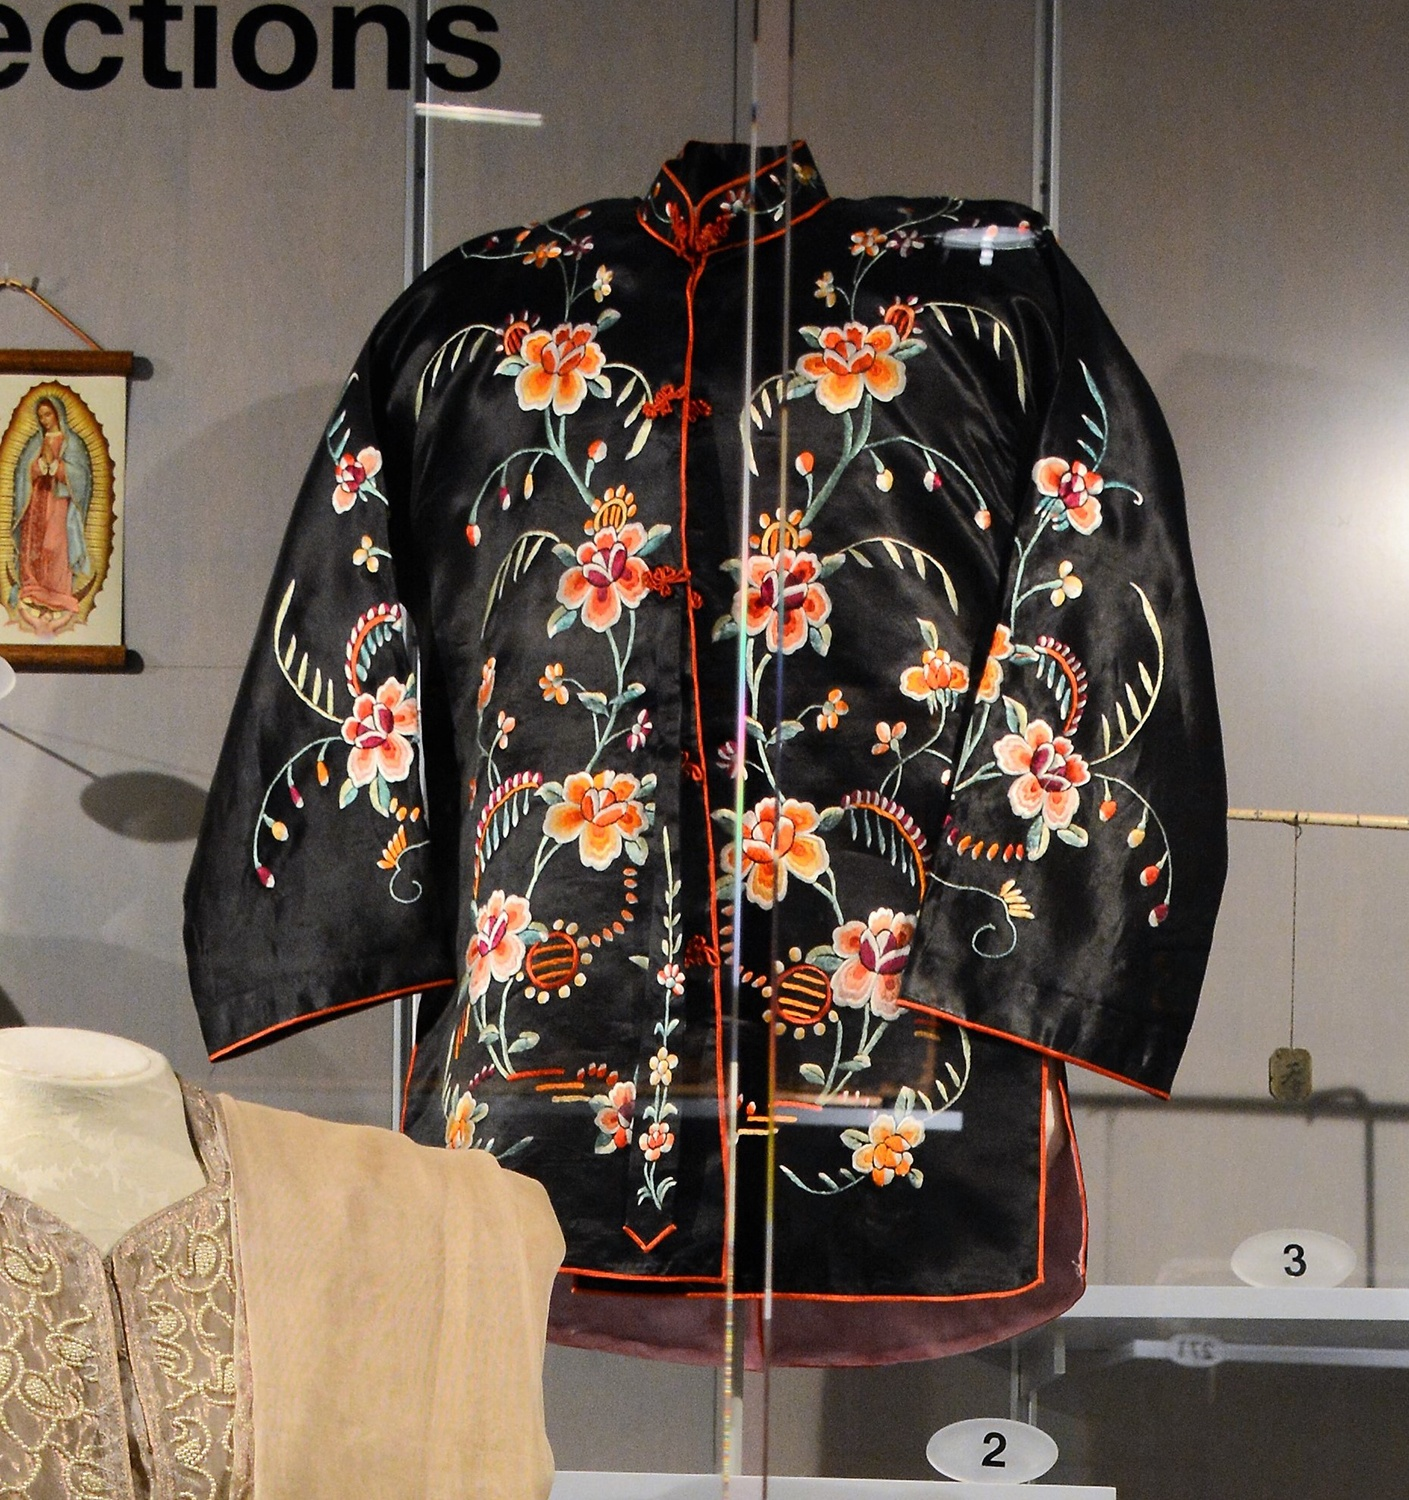 Embroidered jacket given by Lew Shee Lee to her daughter Lydia, c. 1950. Gift of the Git Lee family, Heinz History Center Museum Collections.